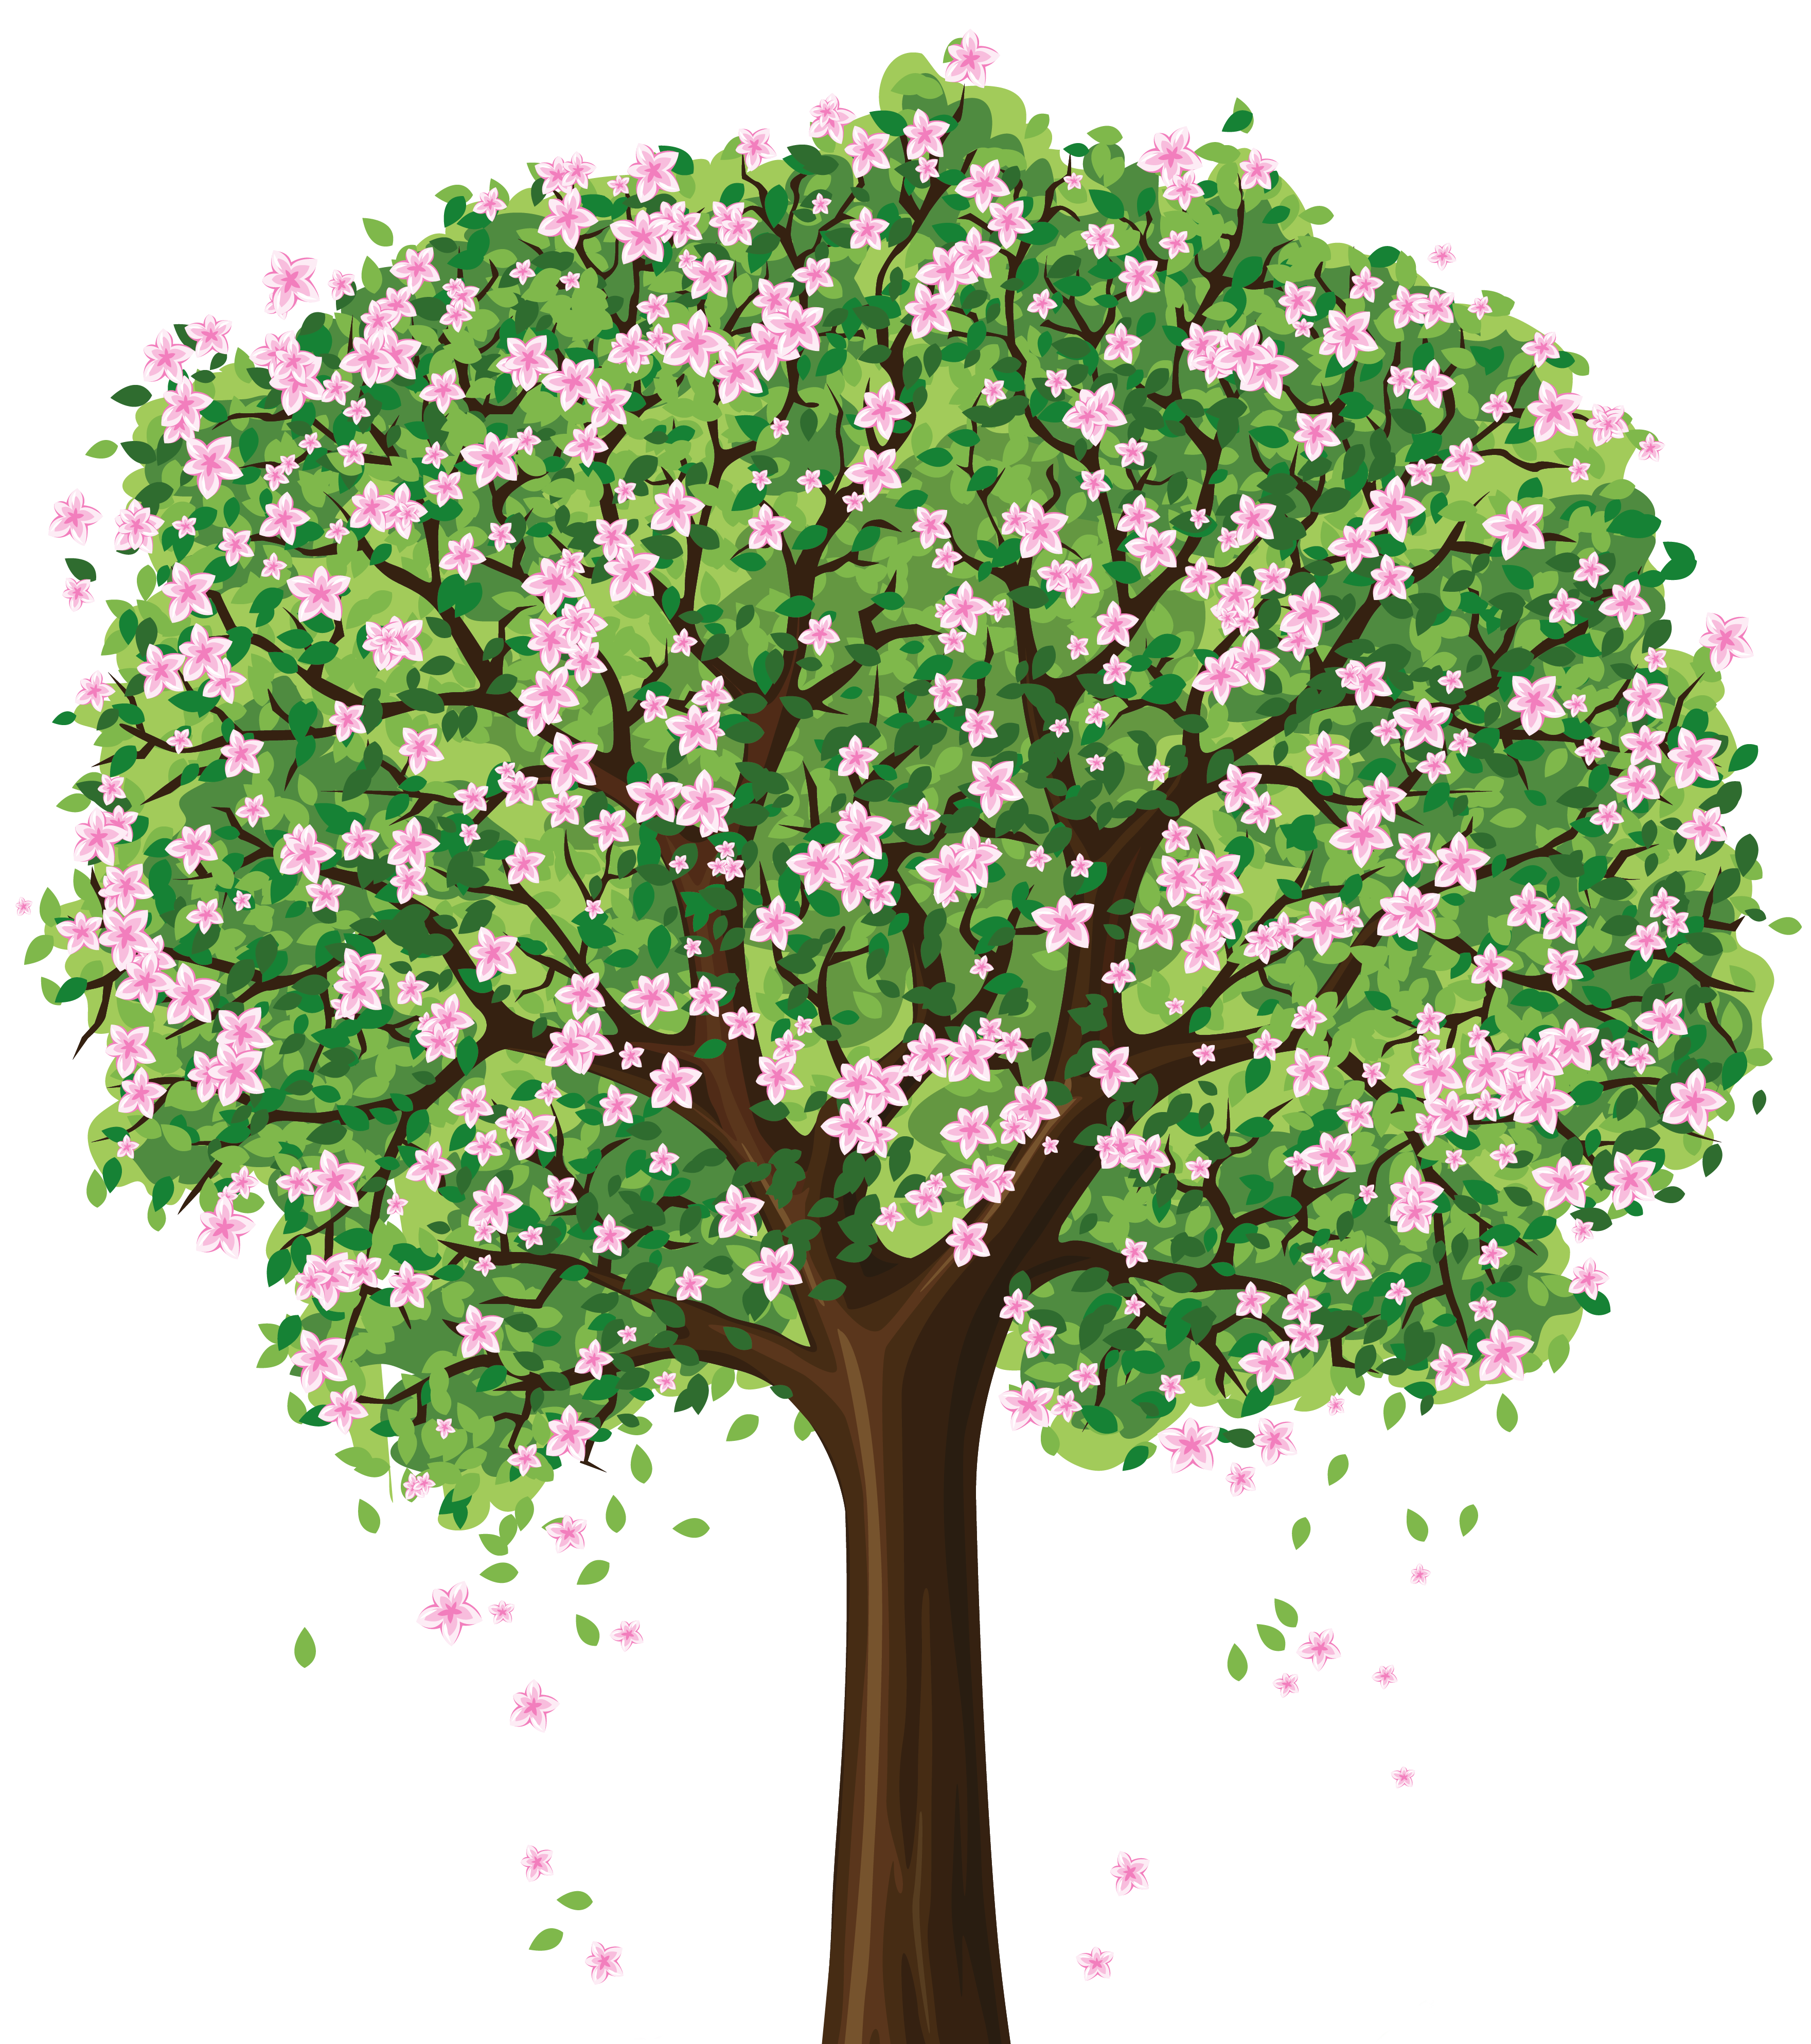 Spring clipart png. Tree gallery yopriceville high